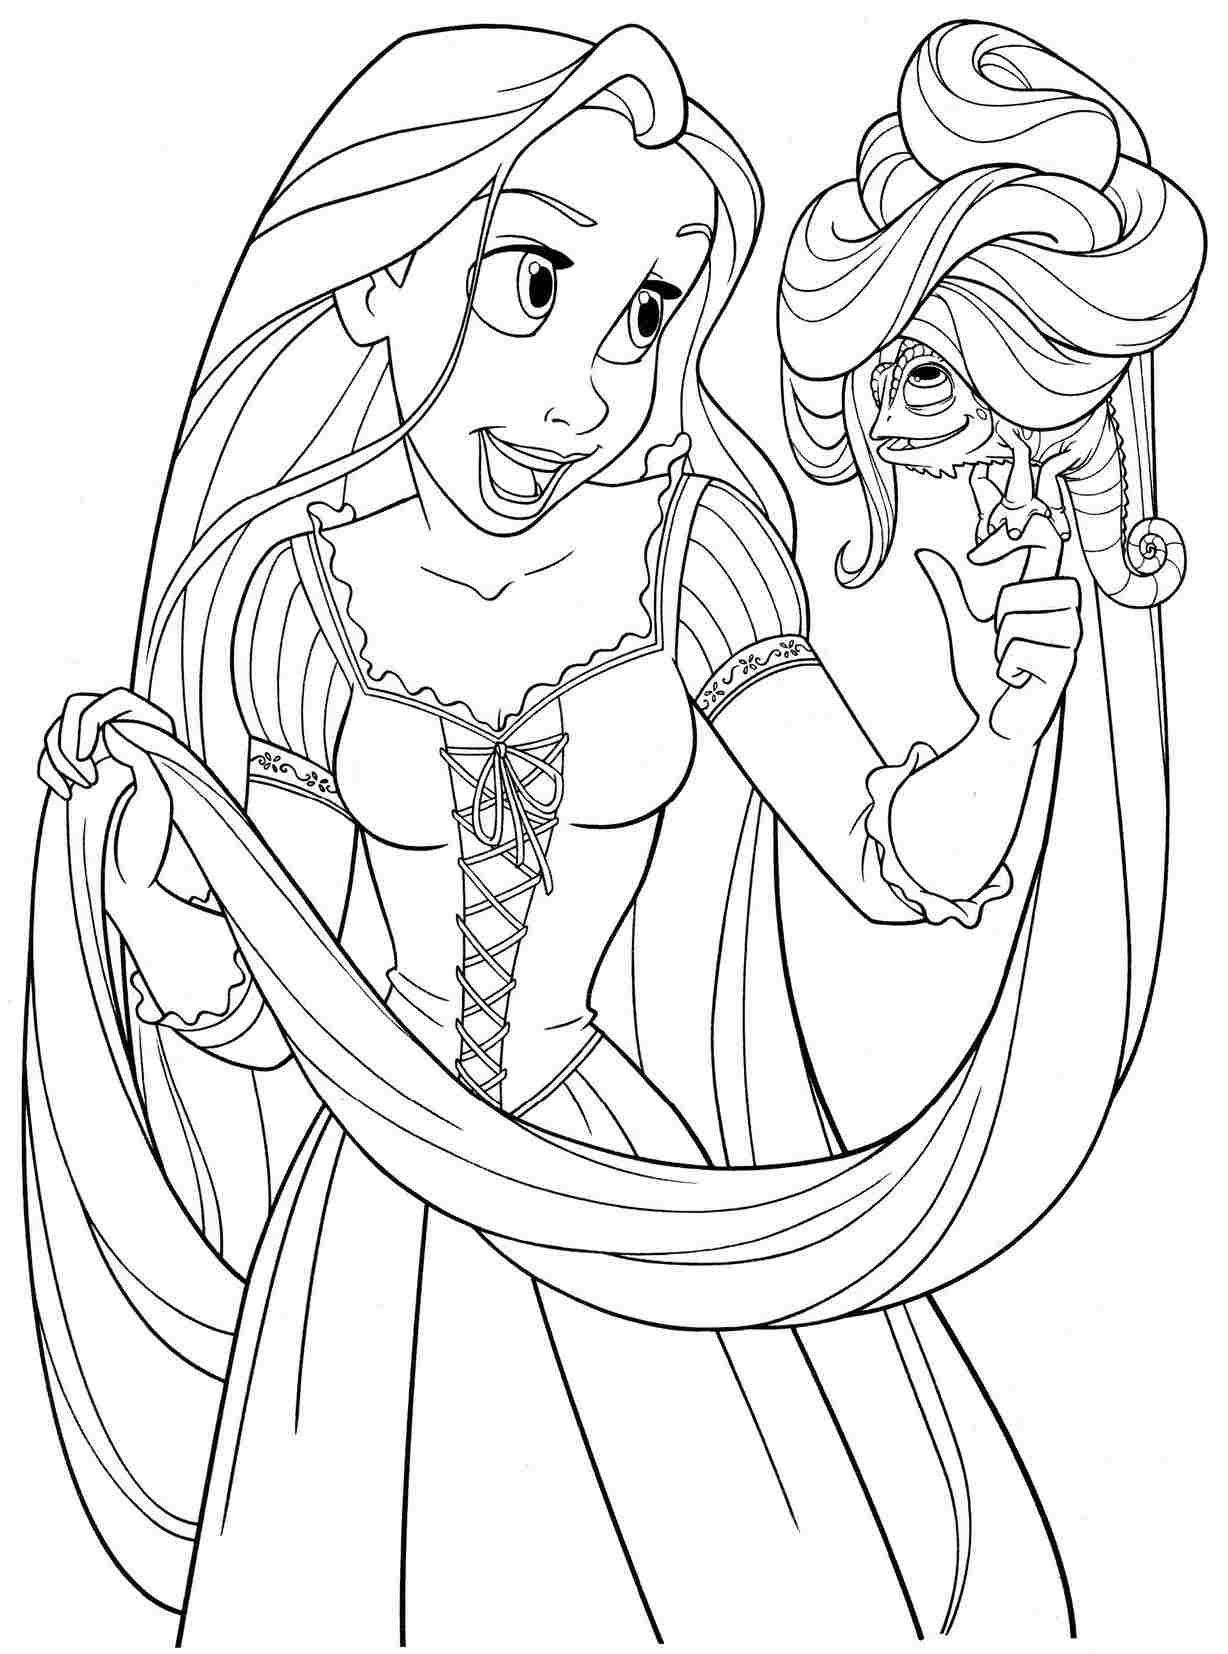 Printable Free Colouring Pages Disney Princess Rapunzel For Kids